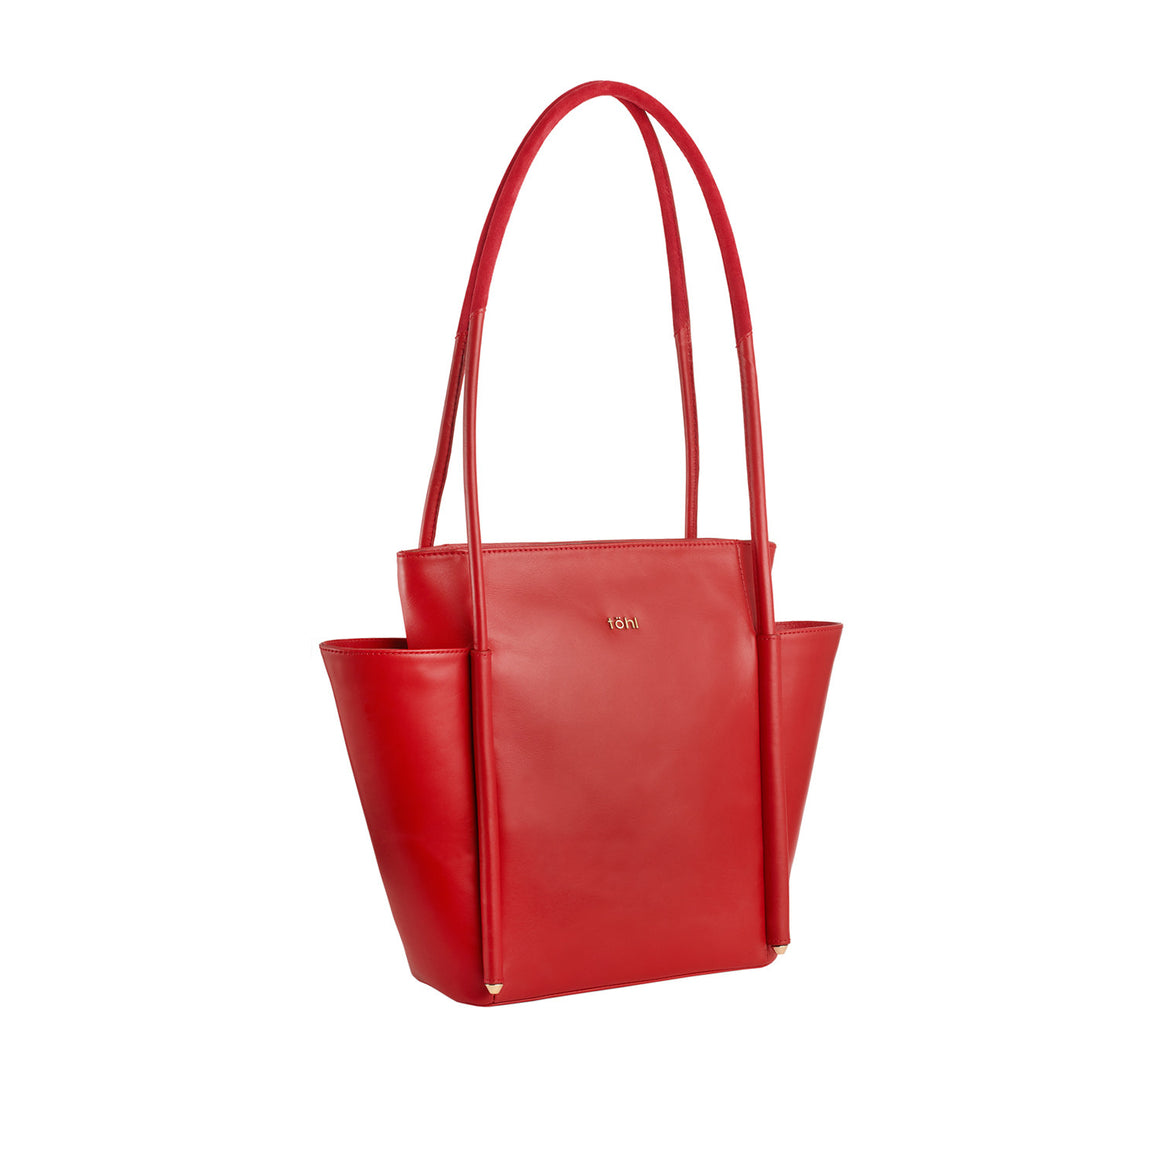 SB 0020 - TOHL PERRY WOMEN'S SHOPPER - SPICE RED